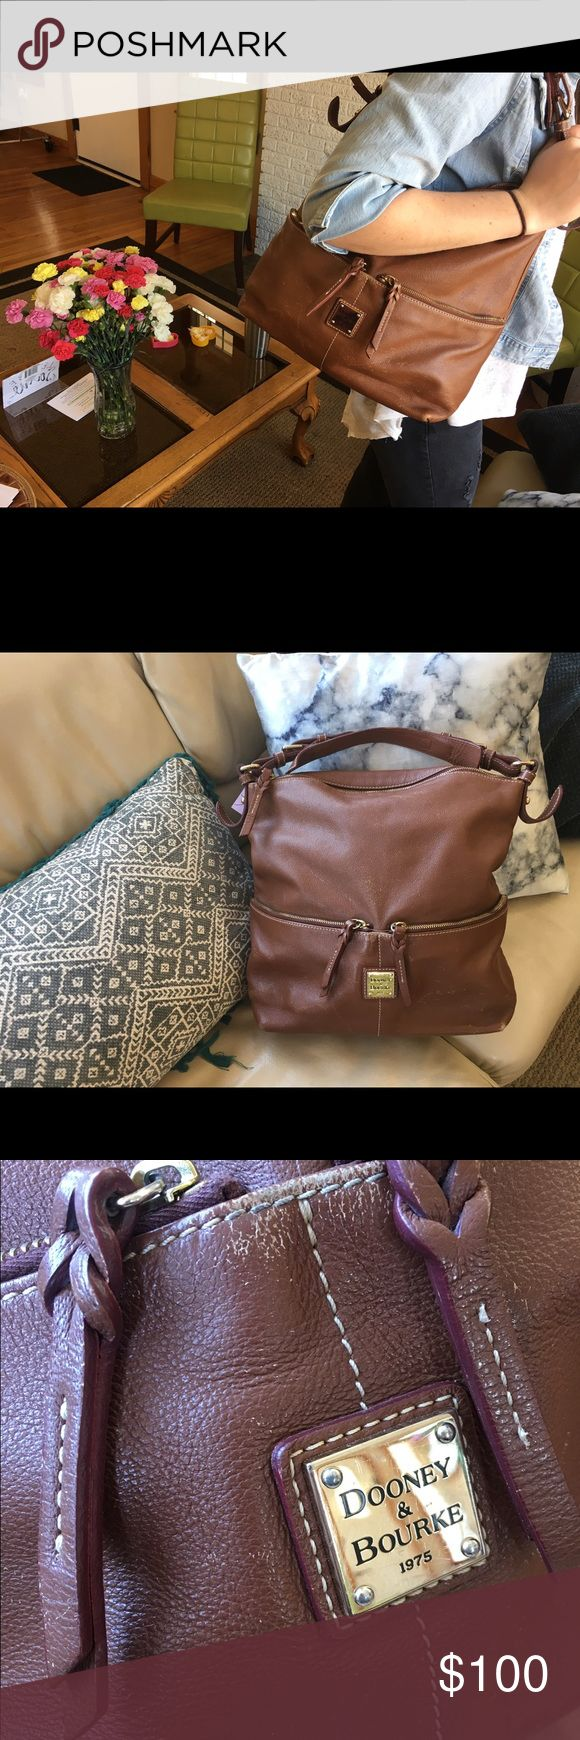 Classic Dooney and Bourke hobo handbag Used Dooney and Bourke bag -Some signs of wear on front(see picture) -paint spots on bottom interior                          Still a great brand name purse to use and for a good price! Dooney & Bourke Bags Hobos